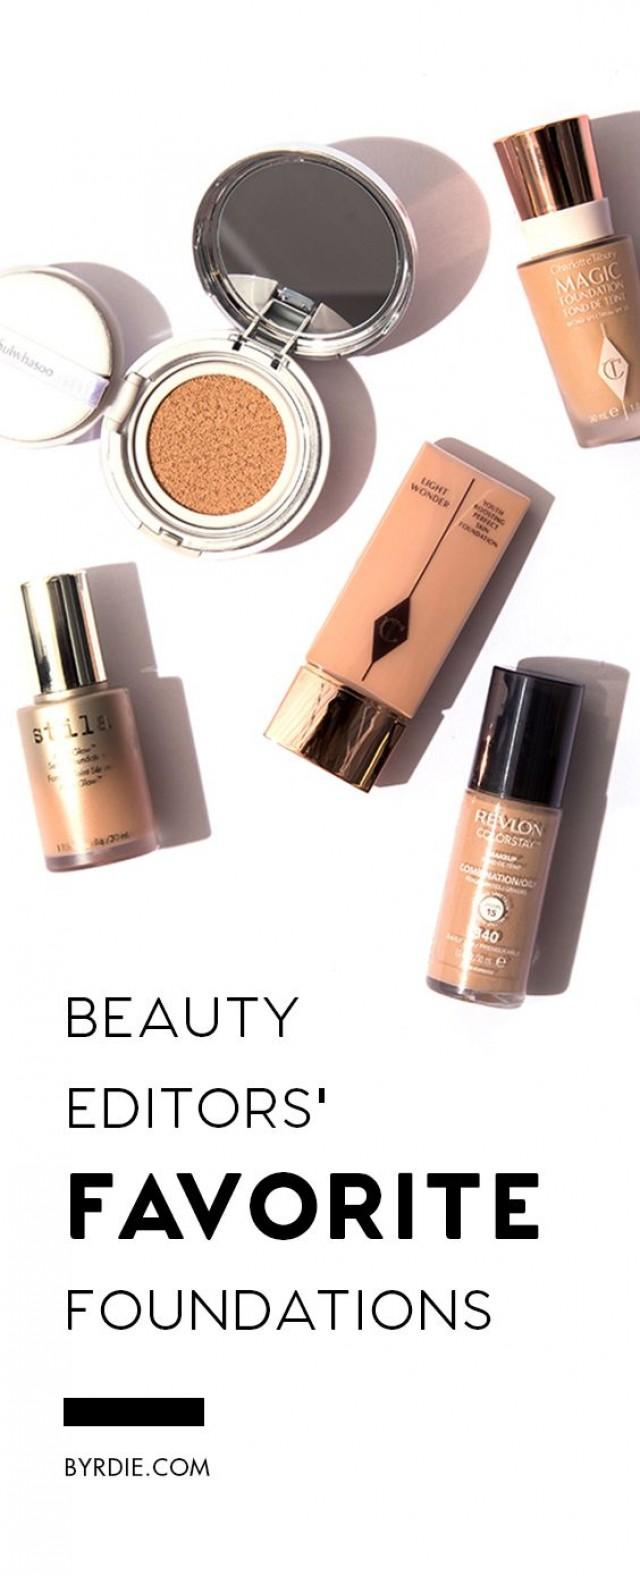 wedding photo - I Tried My Fellow Beauty Editors' Favorite Foundations—Read My Reviews